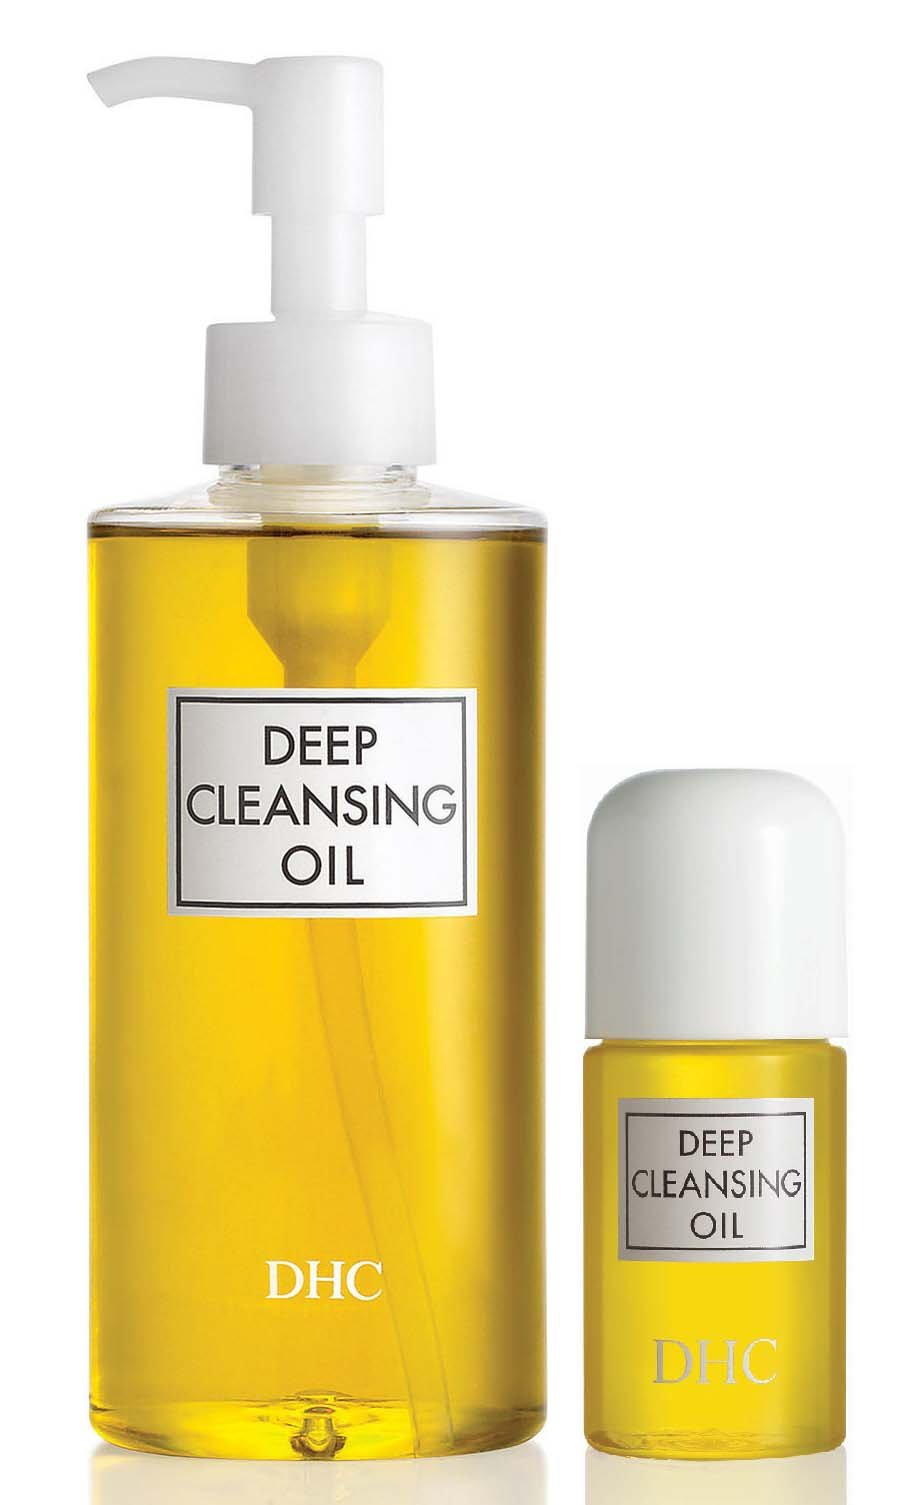 DHC Deep Cleansing Oil, 6.7 fl. oz & Deep Cleansing Oil Travel Size,